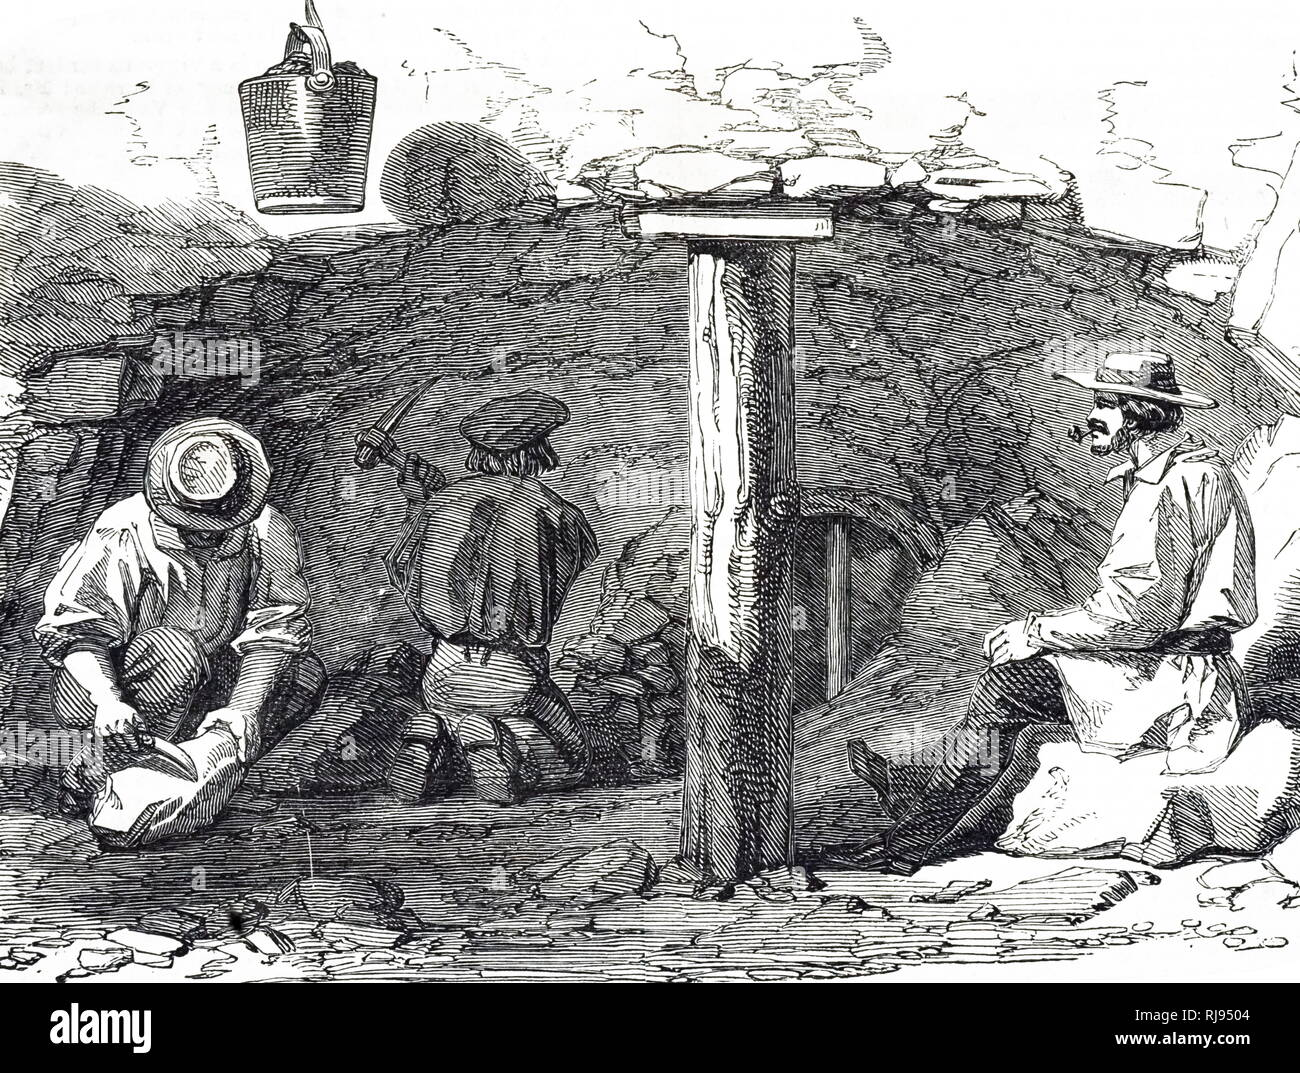 An engraving depicting men dry digging during the New South Wales gold rush, Australia. Dated 19th century - Stock Image